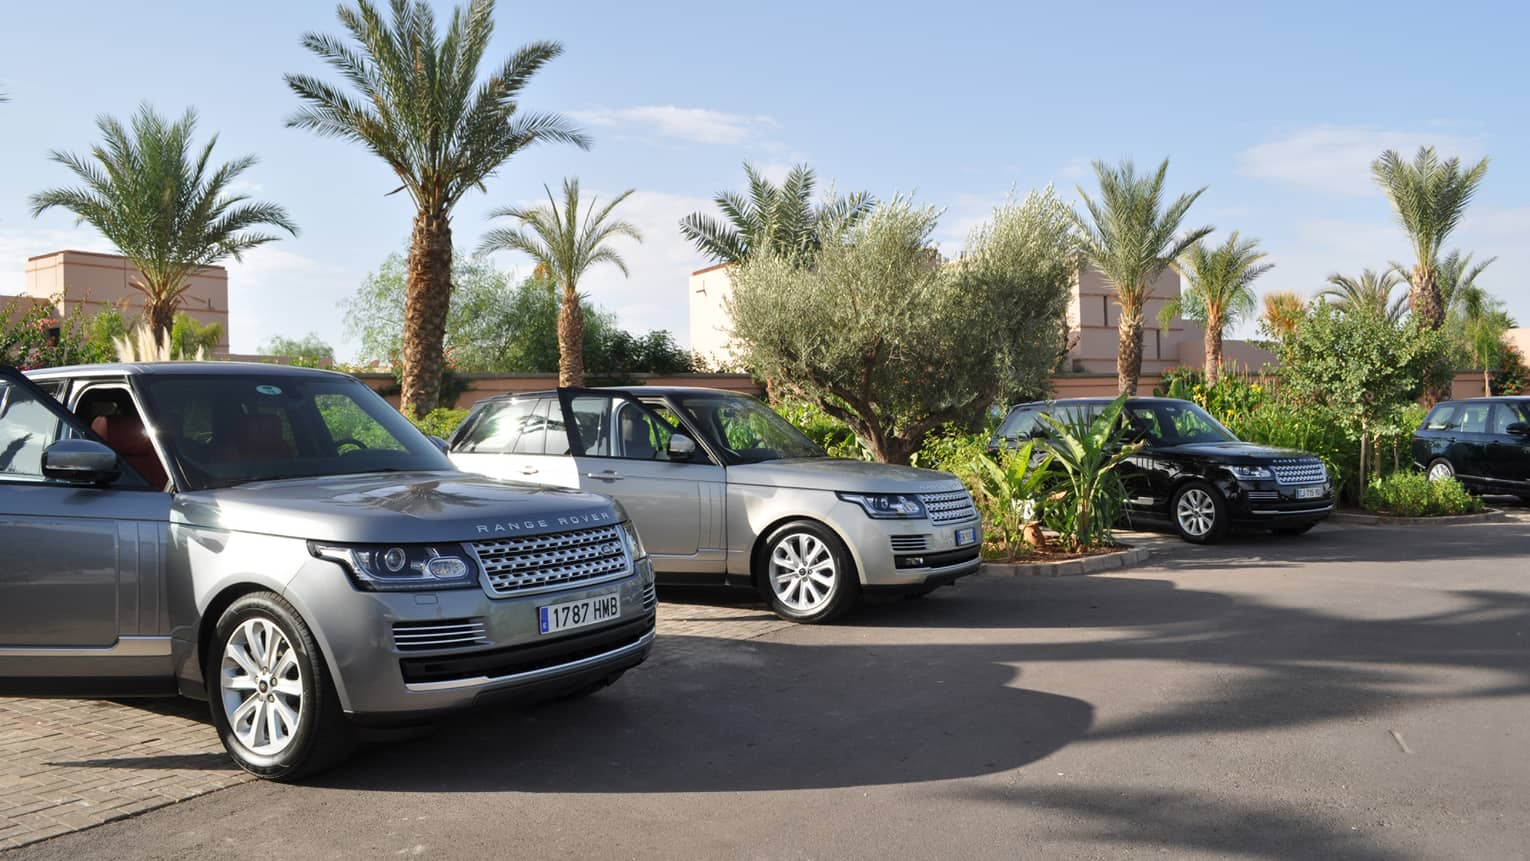 Luxury Range Rover cars with open doors parked under palm trees, blue sky